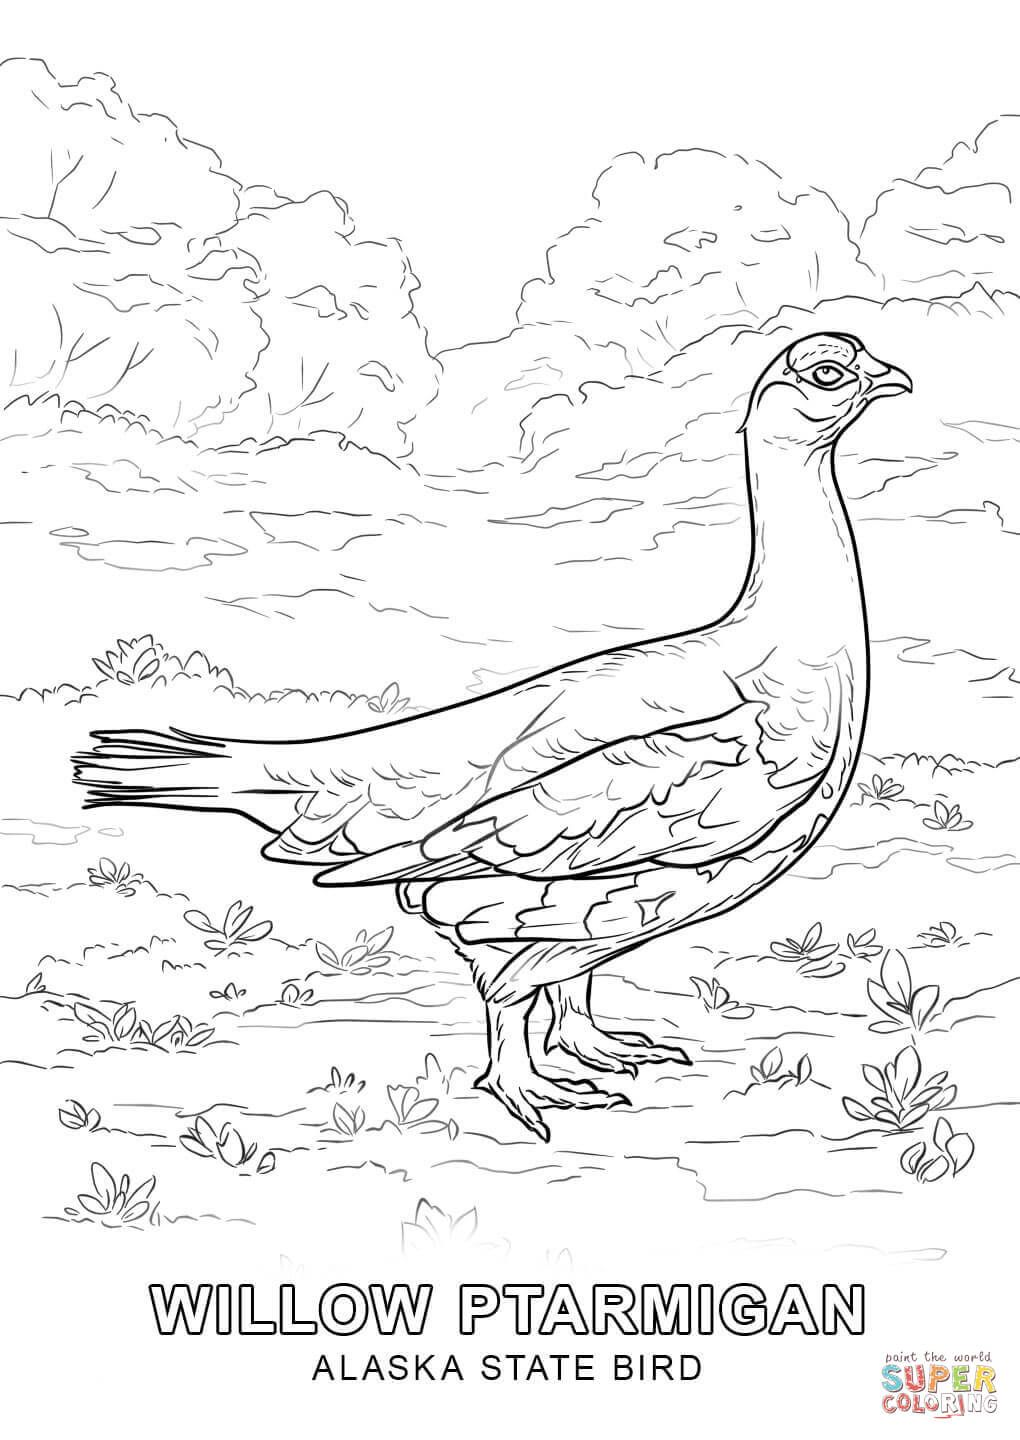 Alaska State Bird Coloring Page From Category Select 27252 Printable Crafts Of Cartoons Nature Animals Bible And Many More